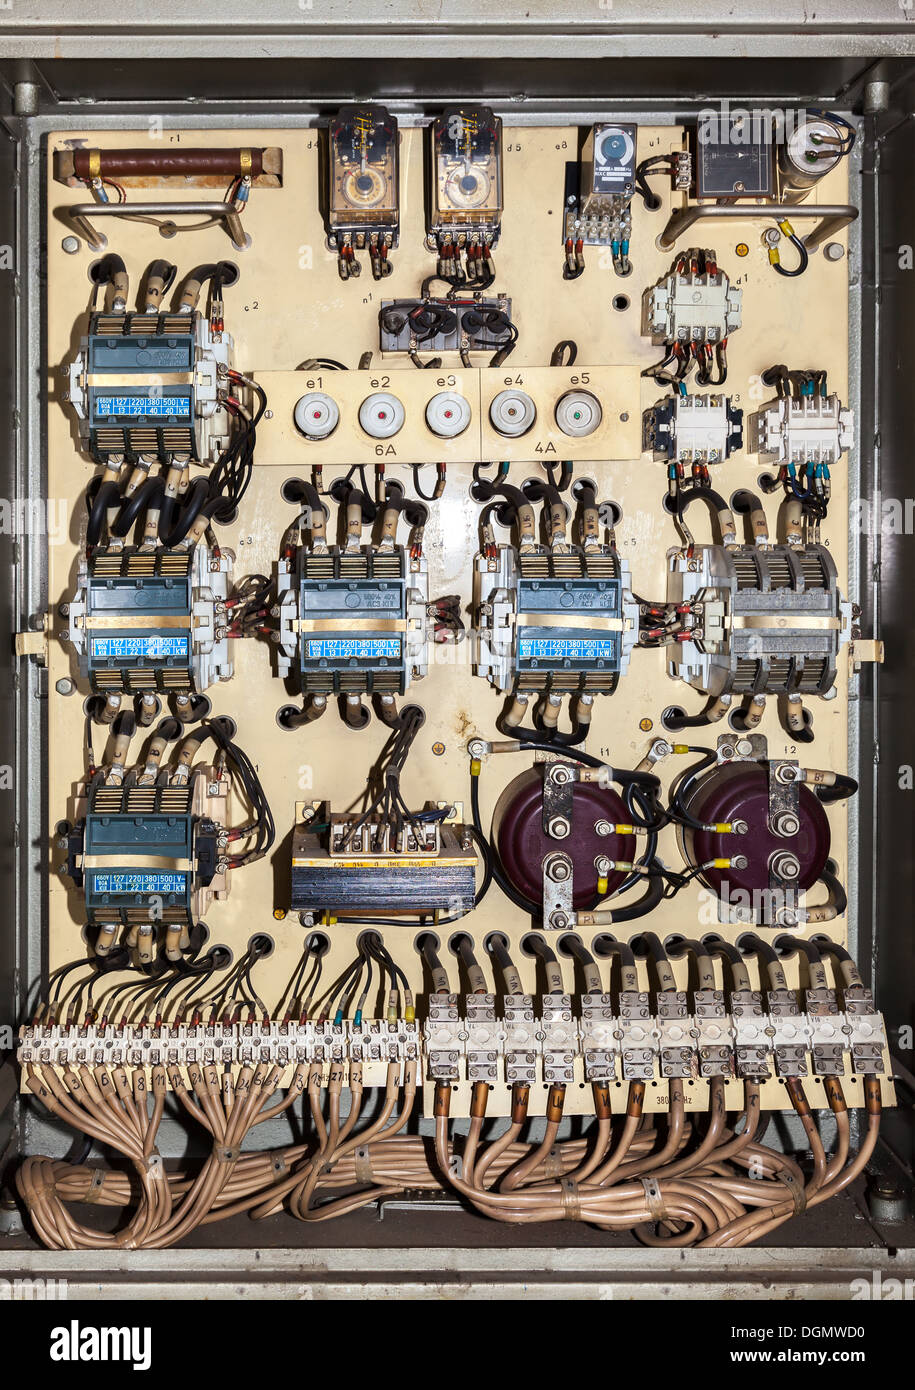 Service Panel Wiring